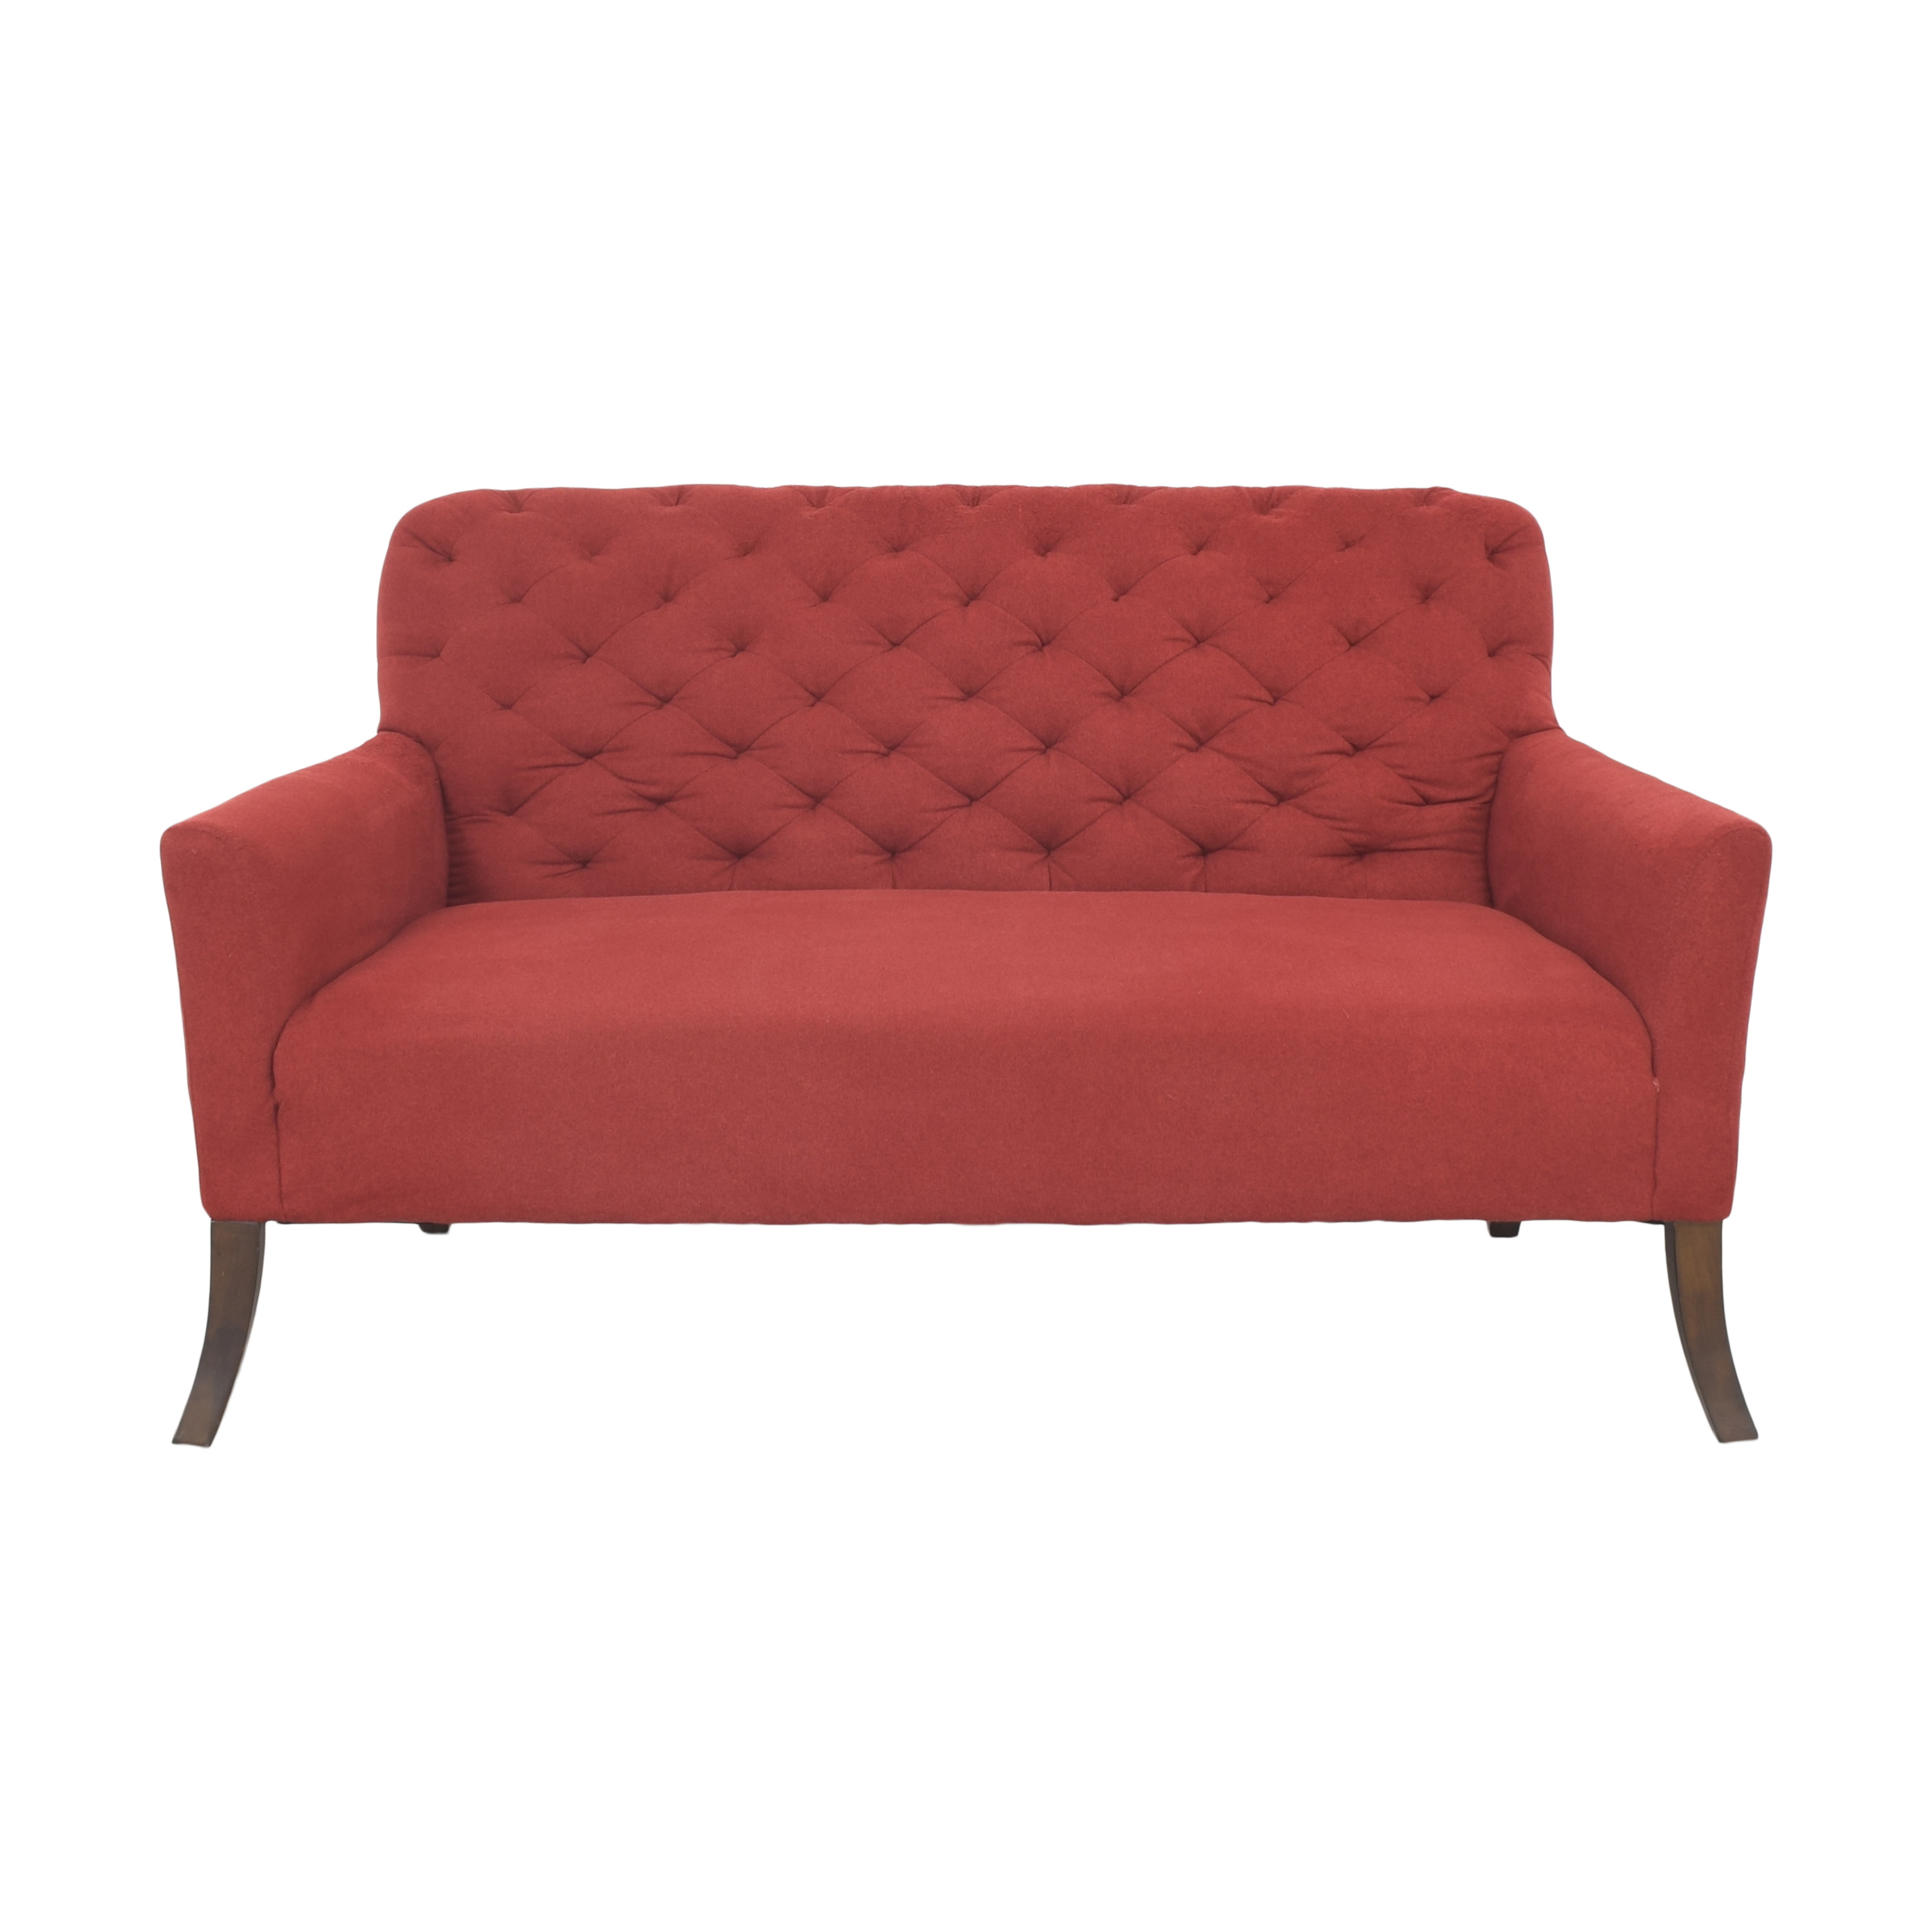 West Elm West Elm Elton Settee red